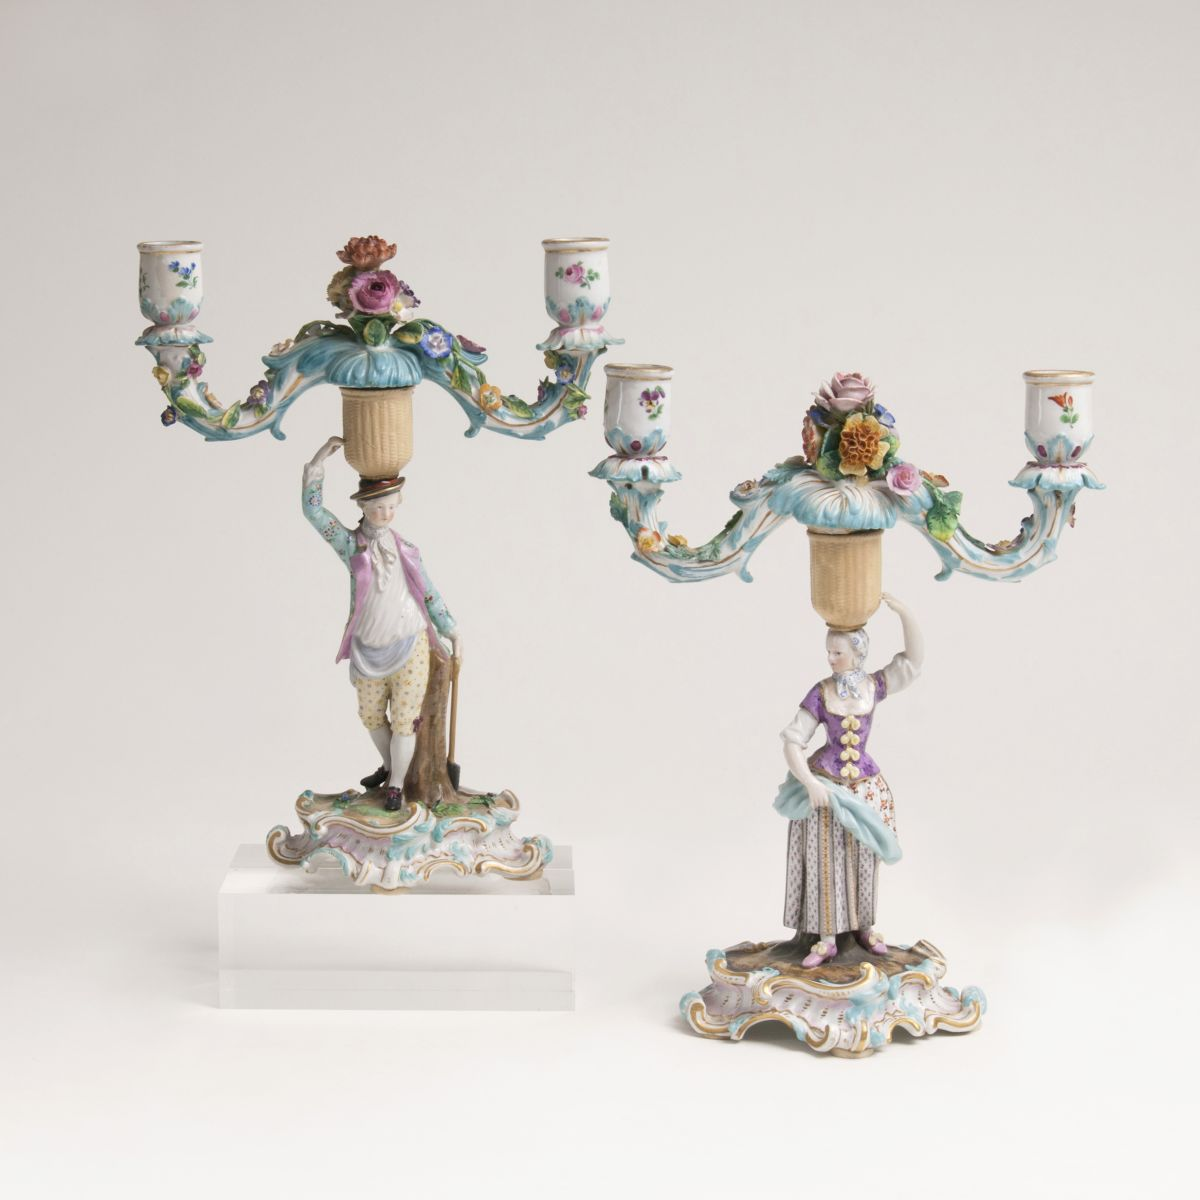 A Pair of Figural Chandeliers with Gardeners